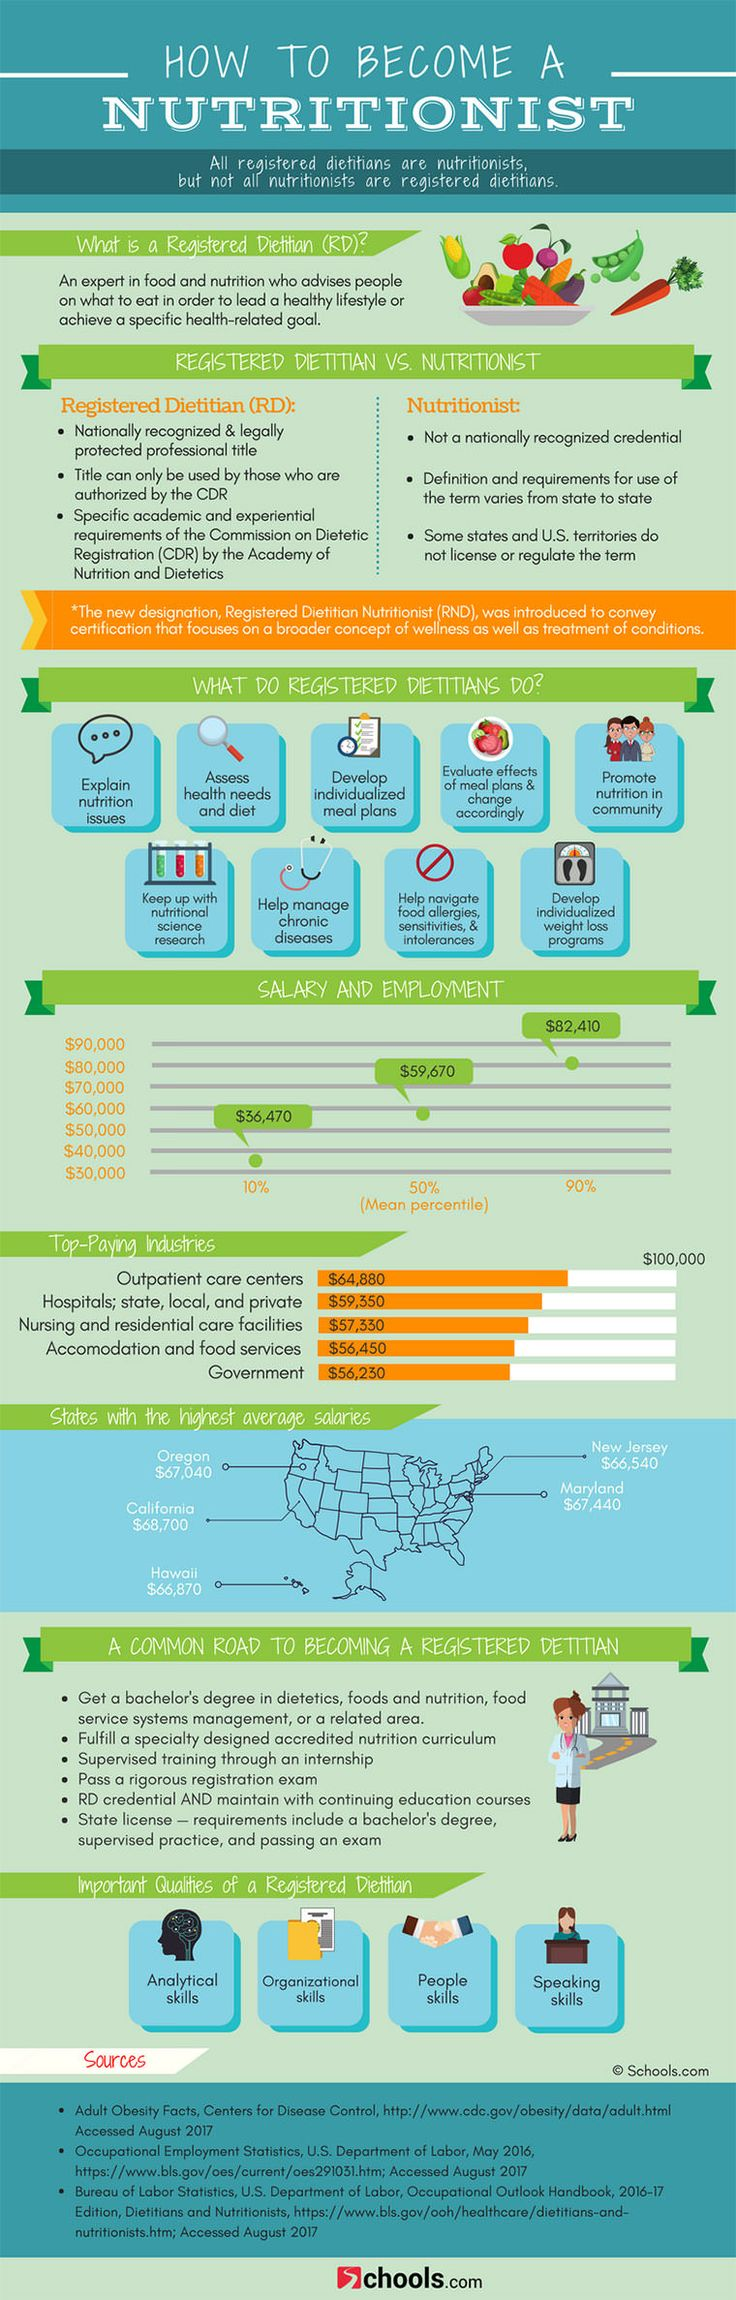 20 best Education Infographics images on Pinterest | Info graphics ...